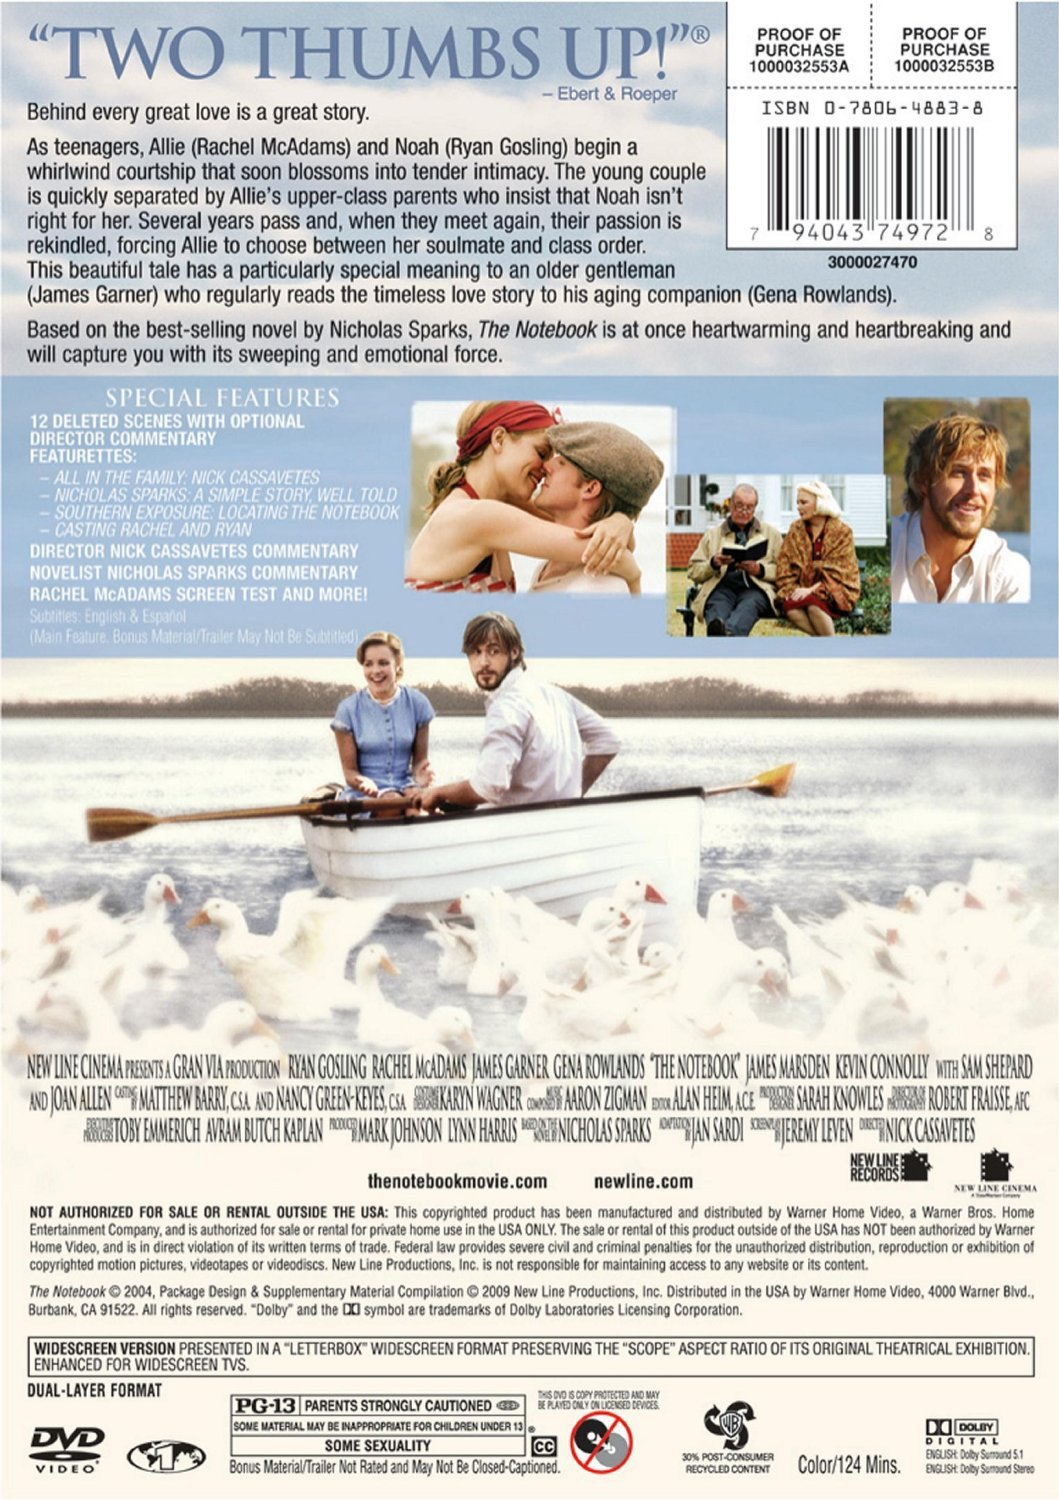 com the notebook james garner gena rowlands com the notebook 2004 james garner gena rowlands rachel mcadams ryan gosling anthony michael q thomas ed grady reneacutee amber